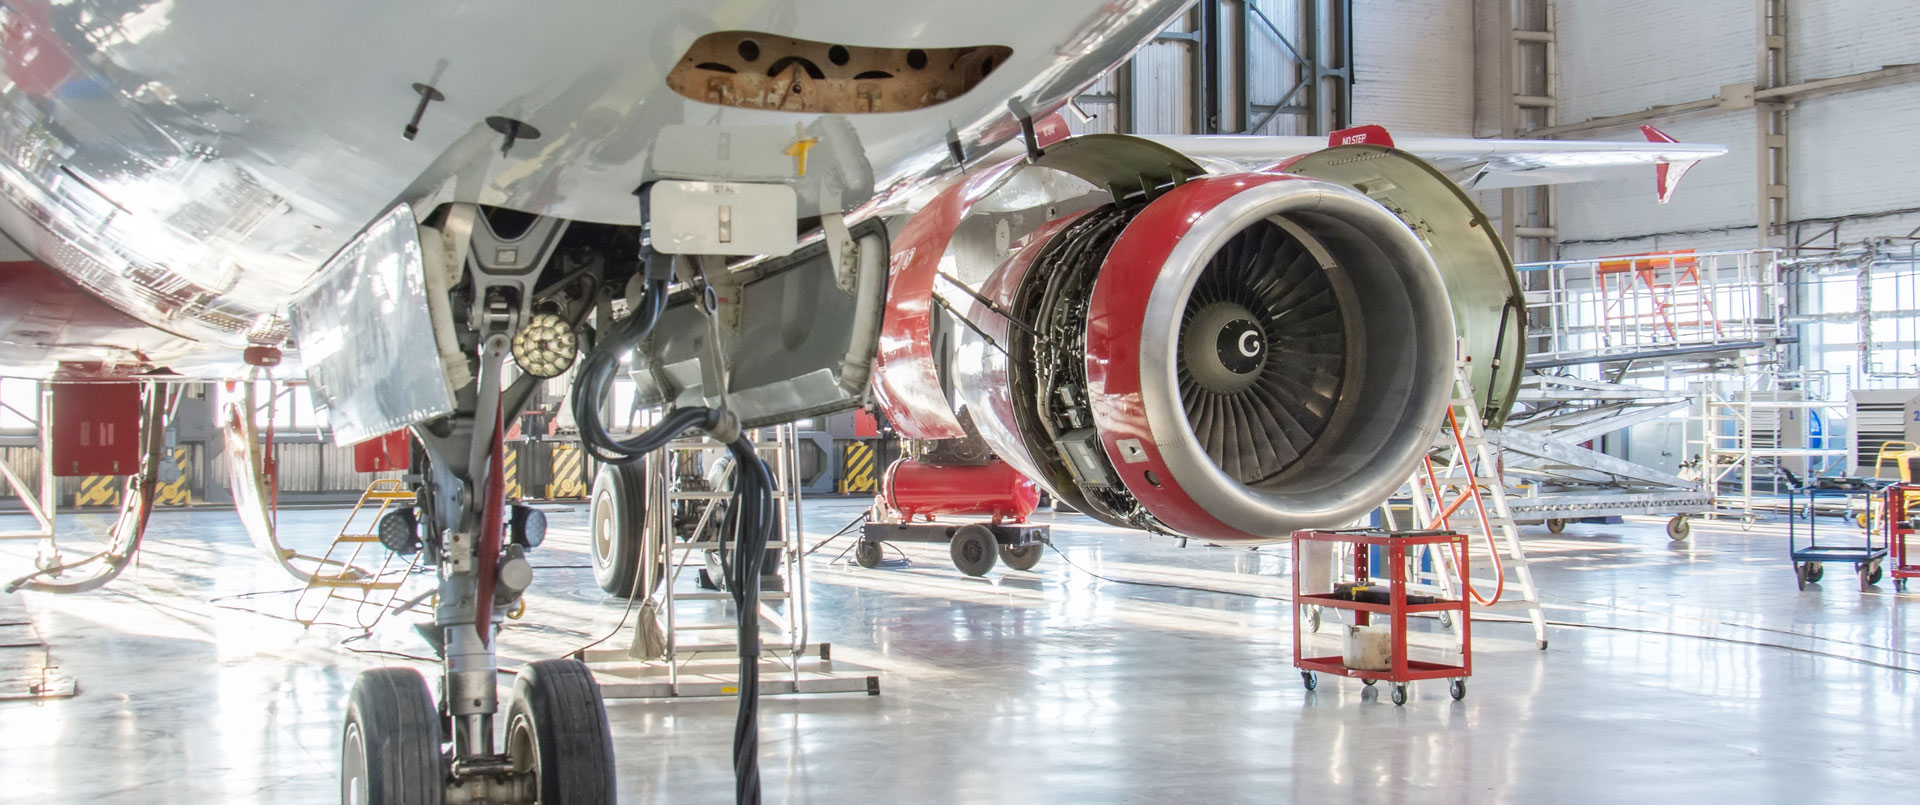 Commercial jet aircraft in hangar for maintenance